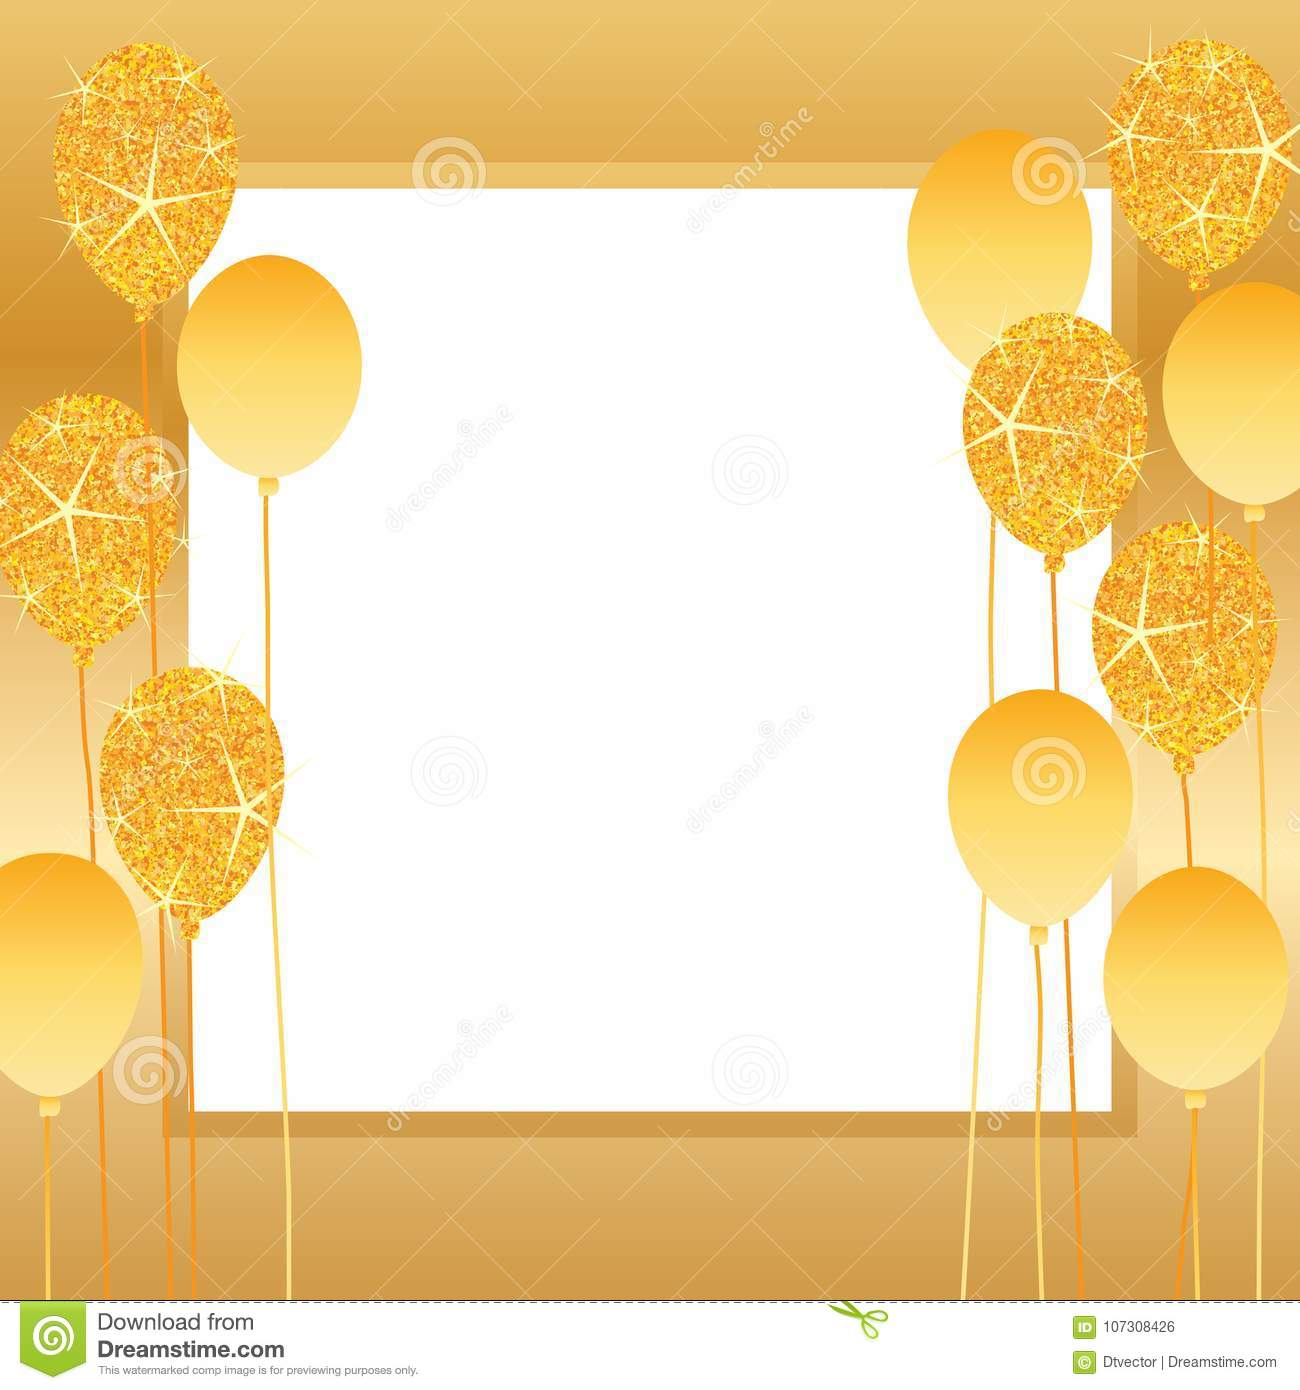 Royalty Free Vector Download Golden Glitter Balloon Frame Stock